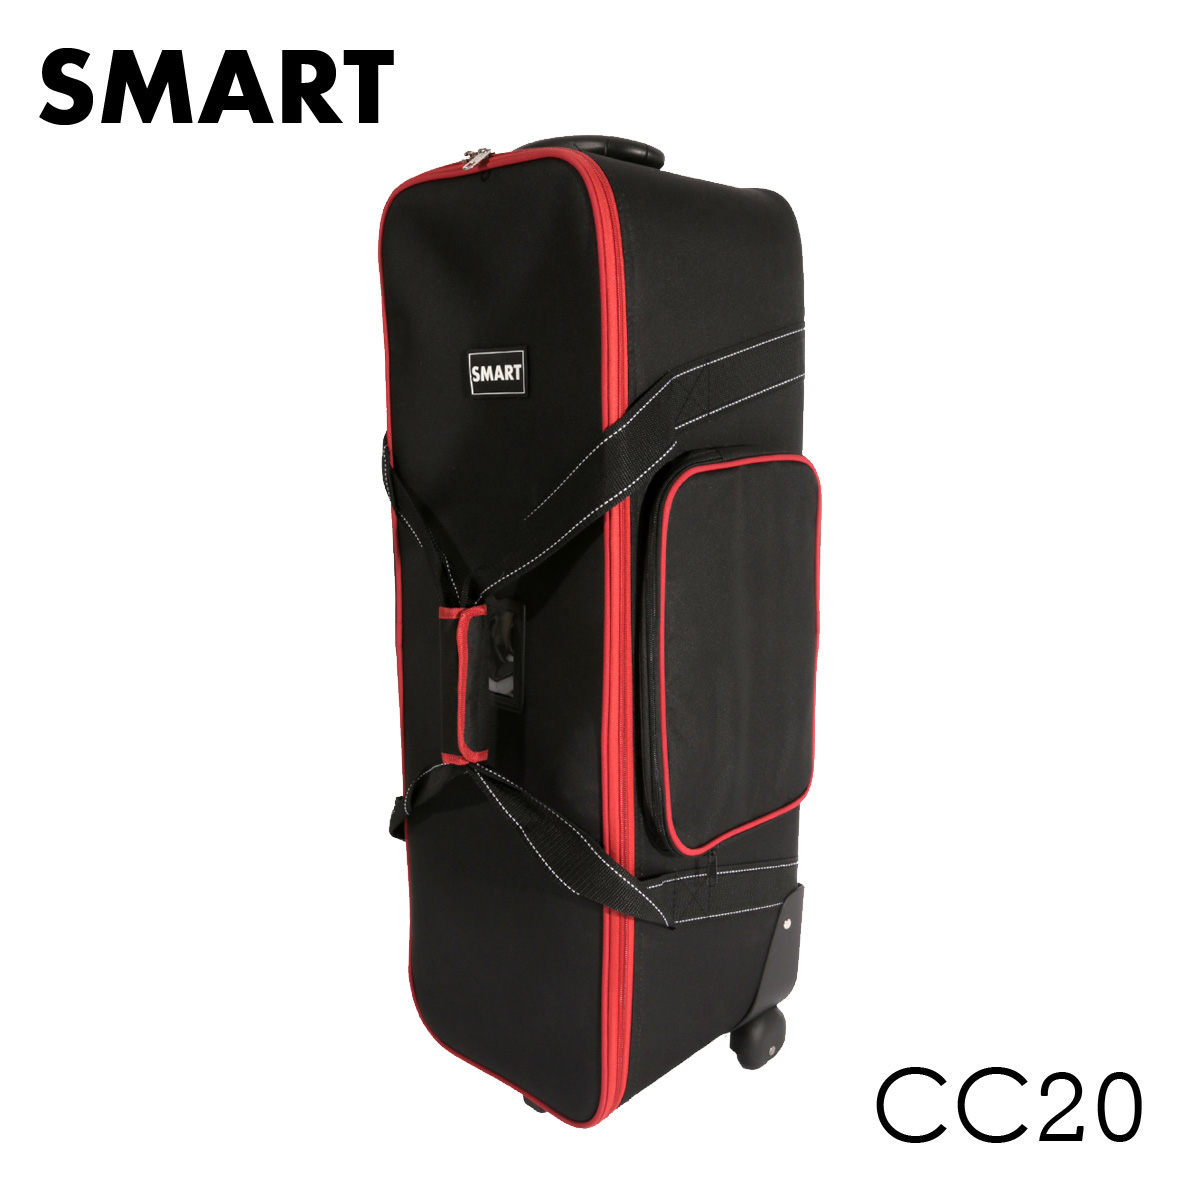 SMART CC20 Hard trolley bag for x3 mini studio flash